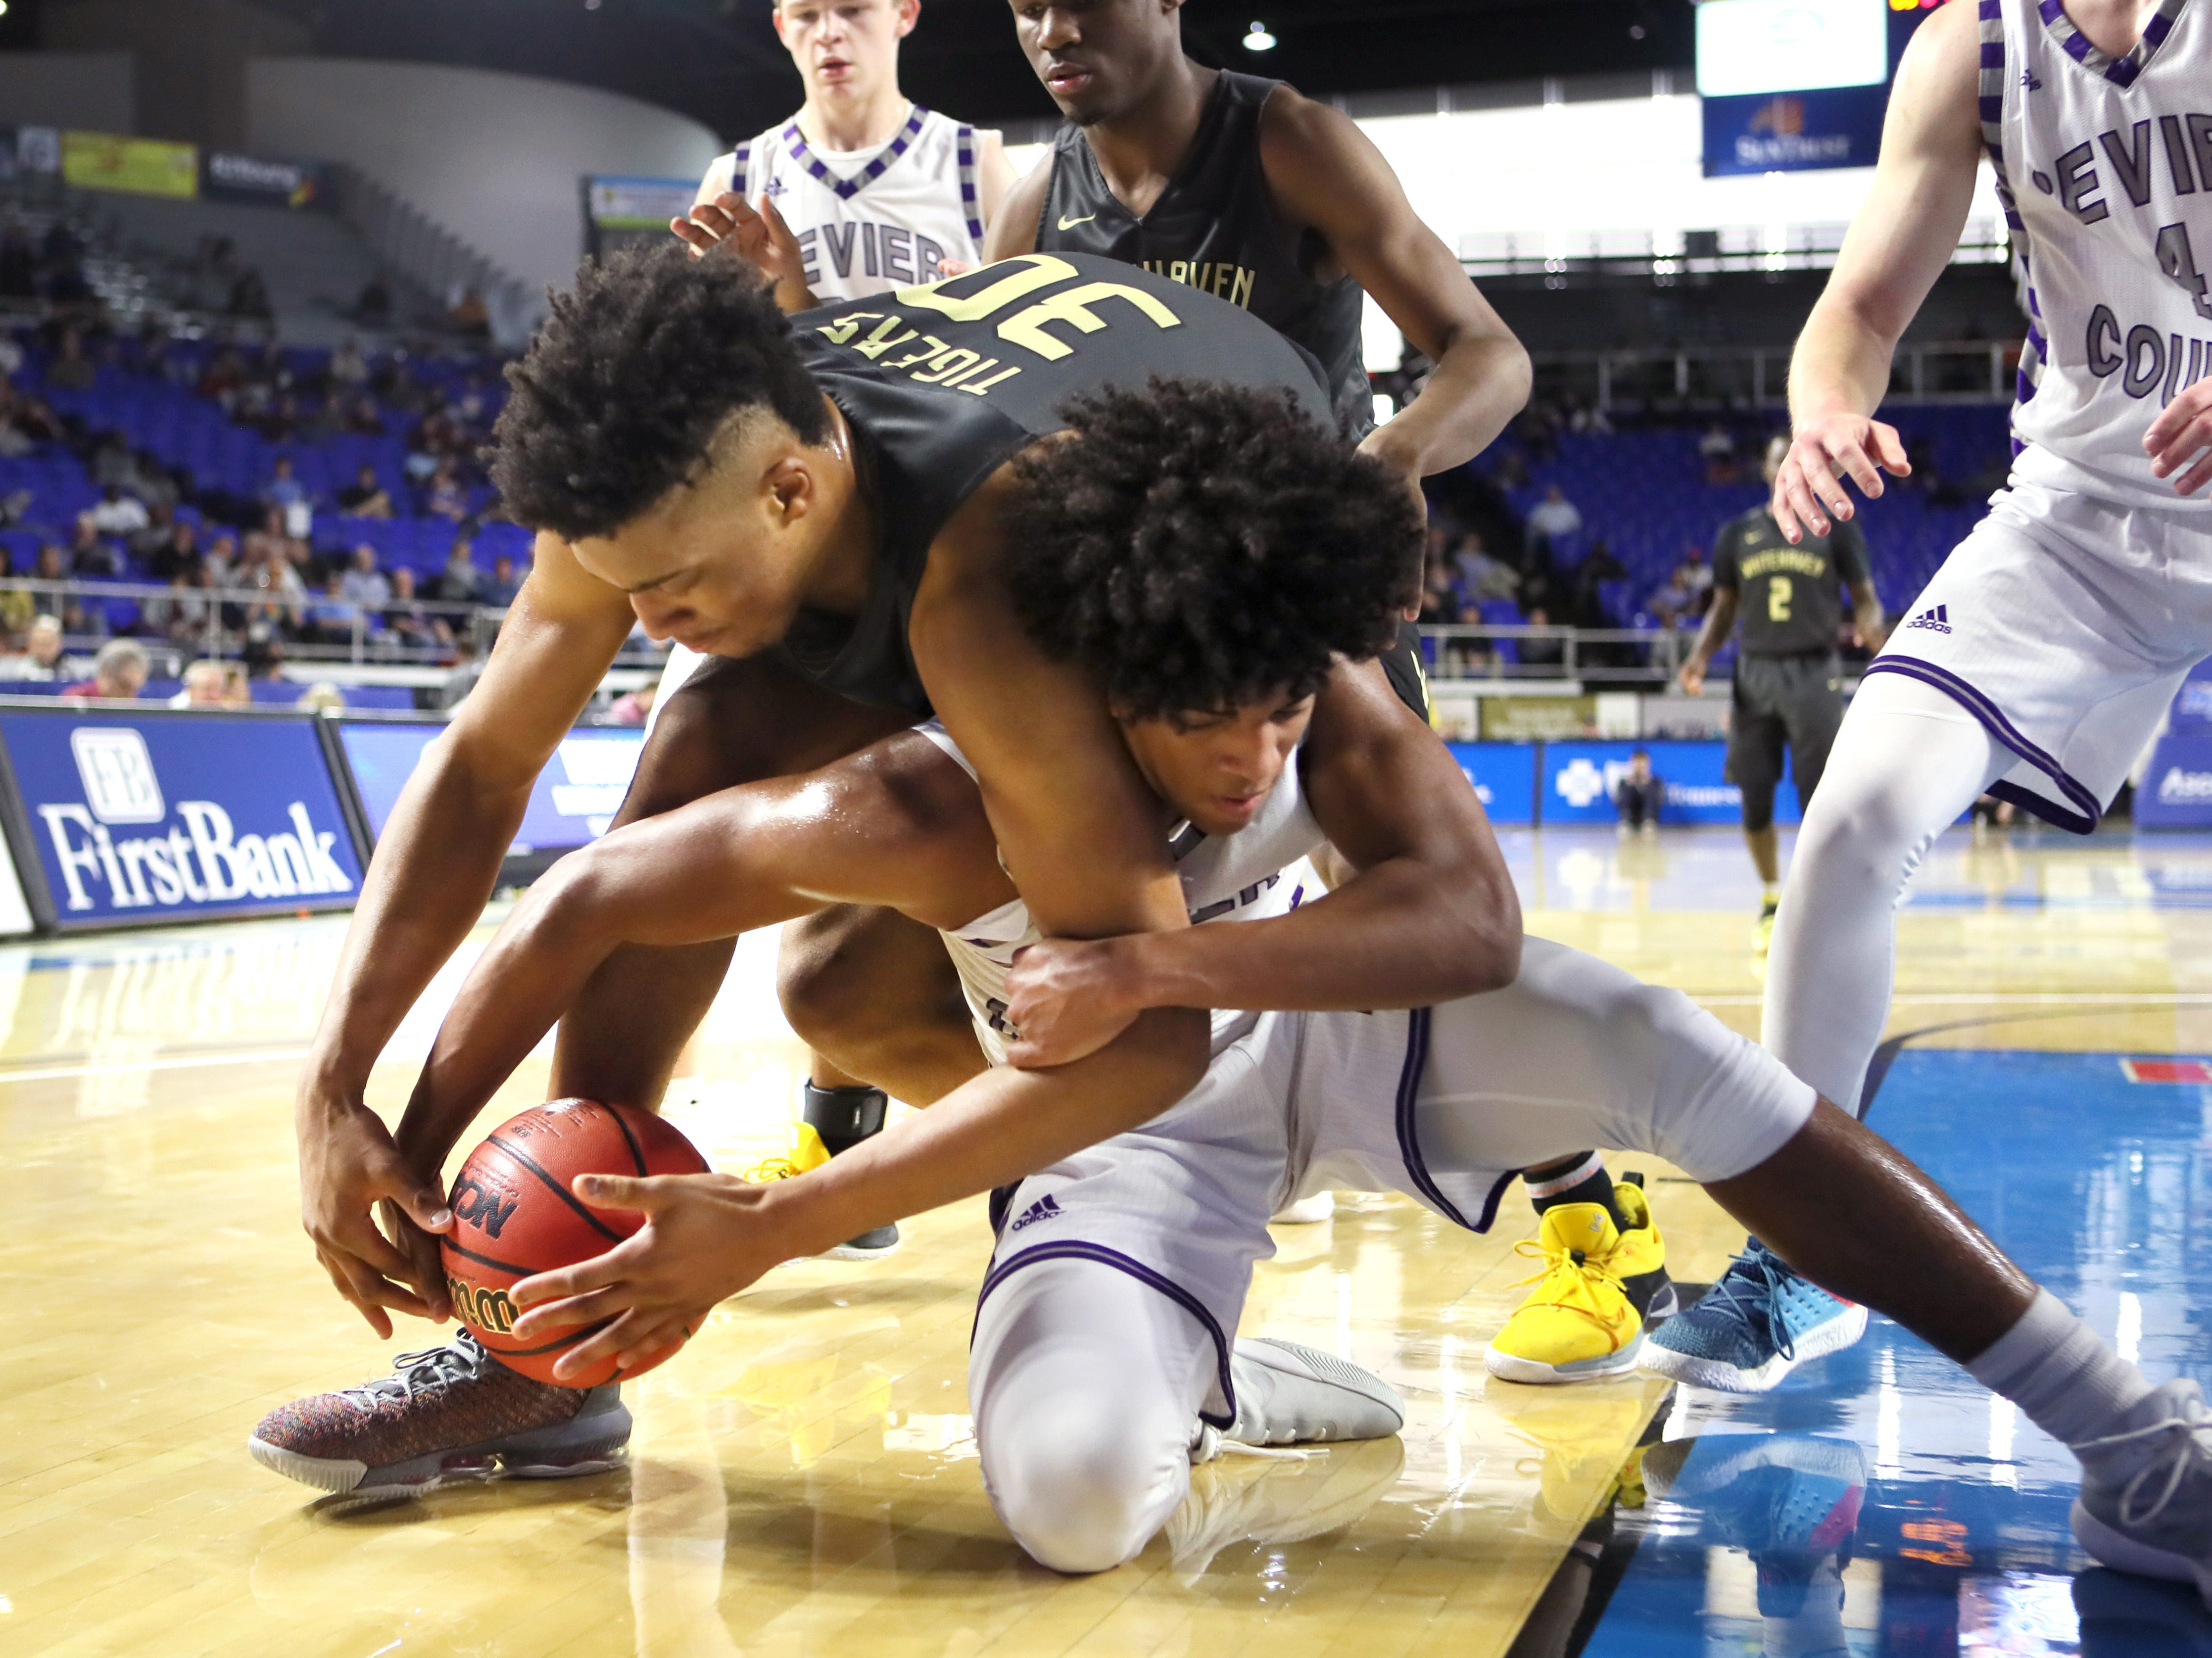 Whitehaven's Jordan Wilmore fights for a loose ball with Sevier County's Cam Burden during the TSSAA Division I basketball state tournament at the Murphy Center in Murfreesboro, Tenn. on Wednesday, March 13, 2019.